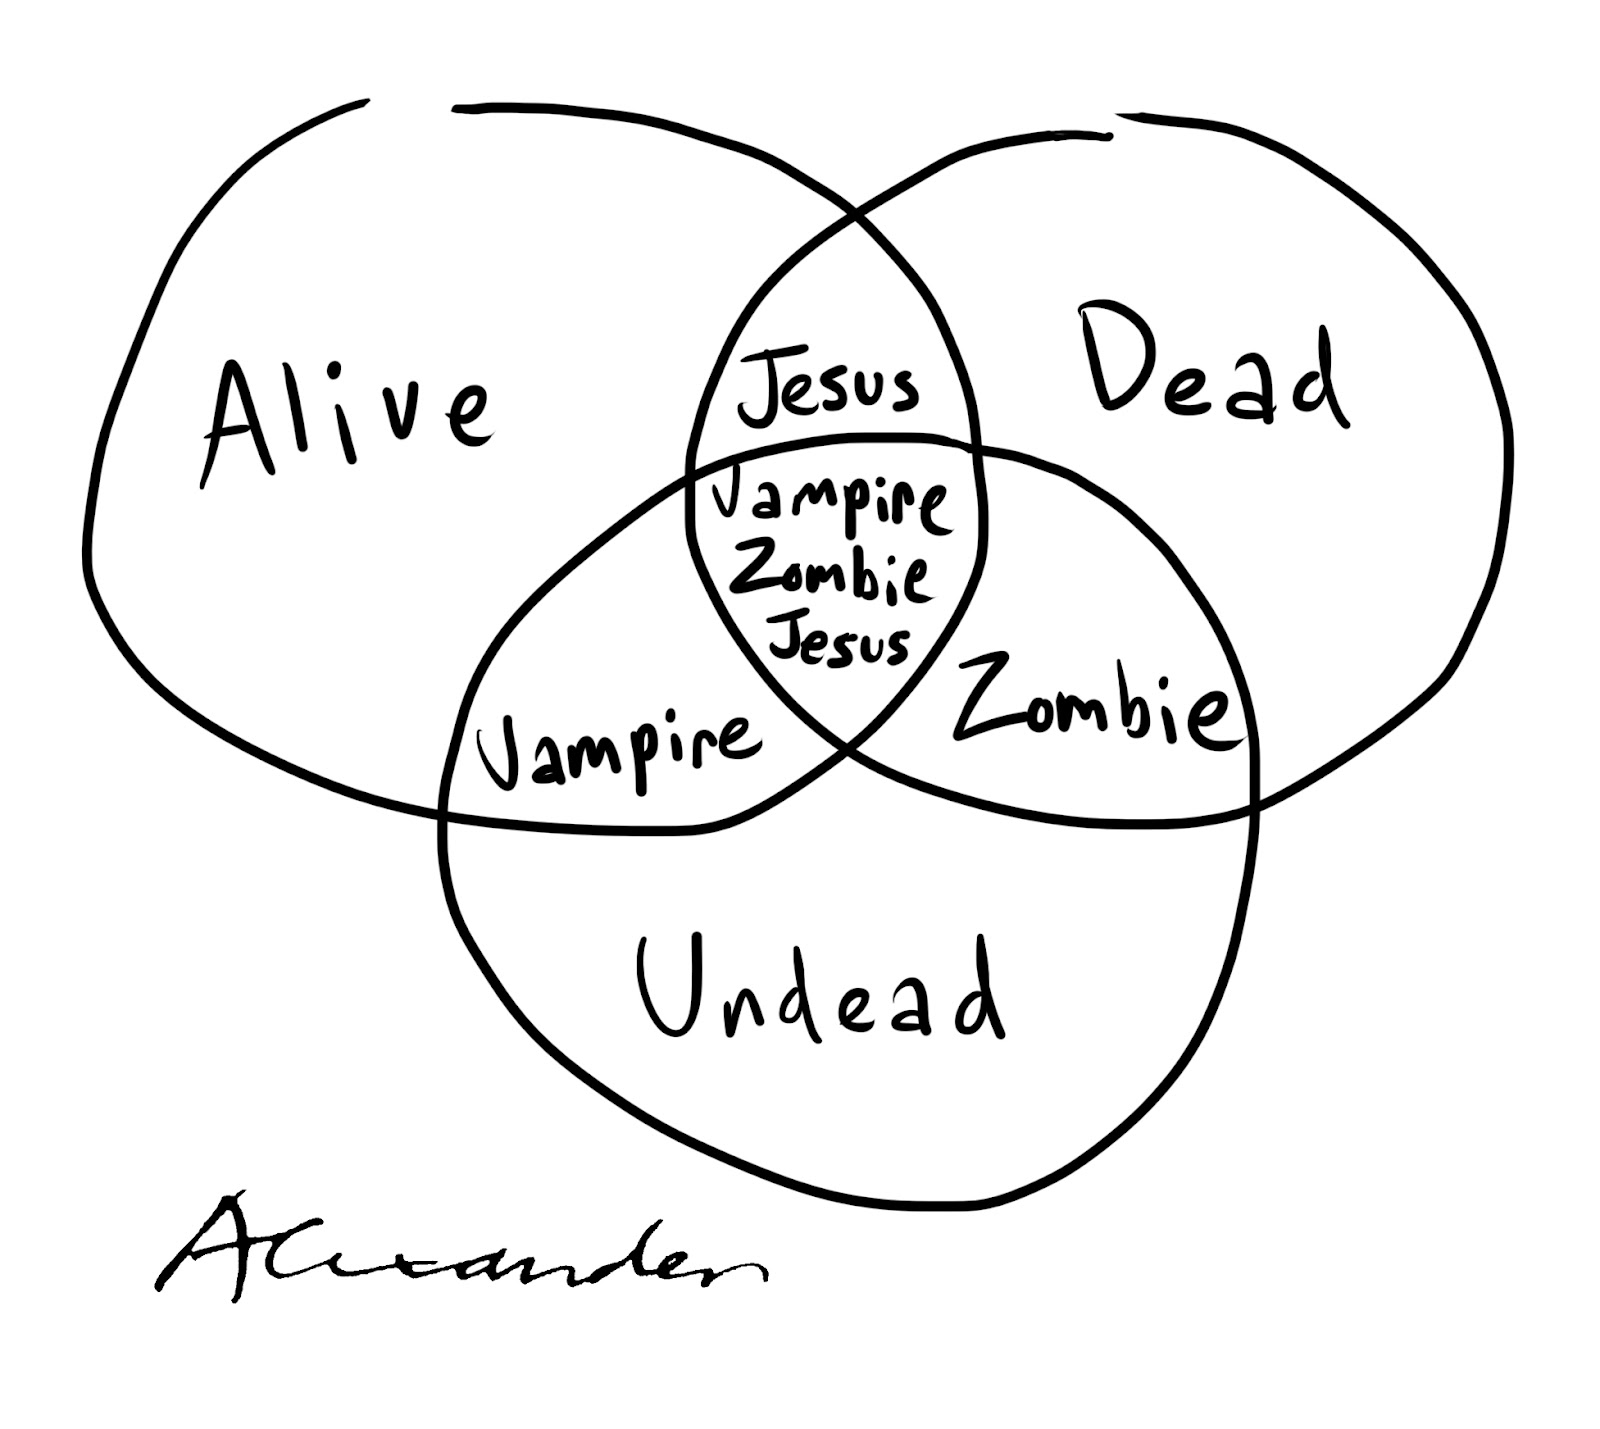 Alexander S Cartoon Blog Venn Diagram